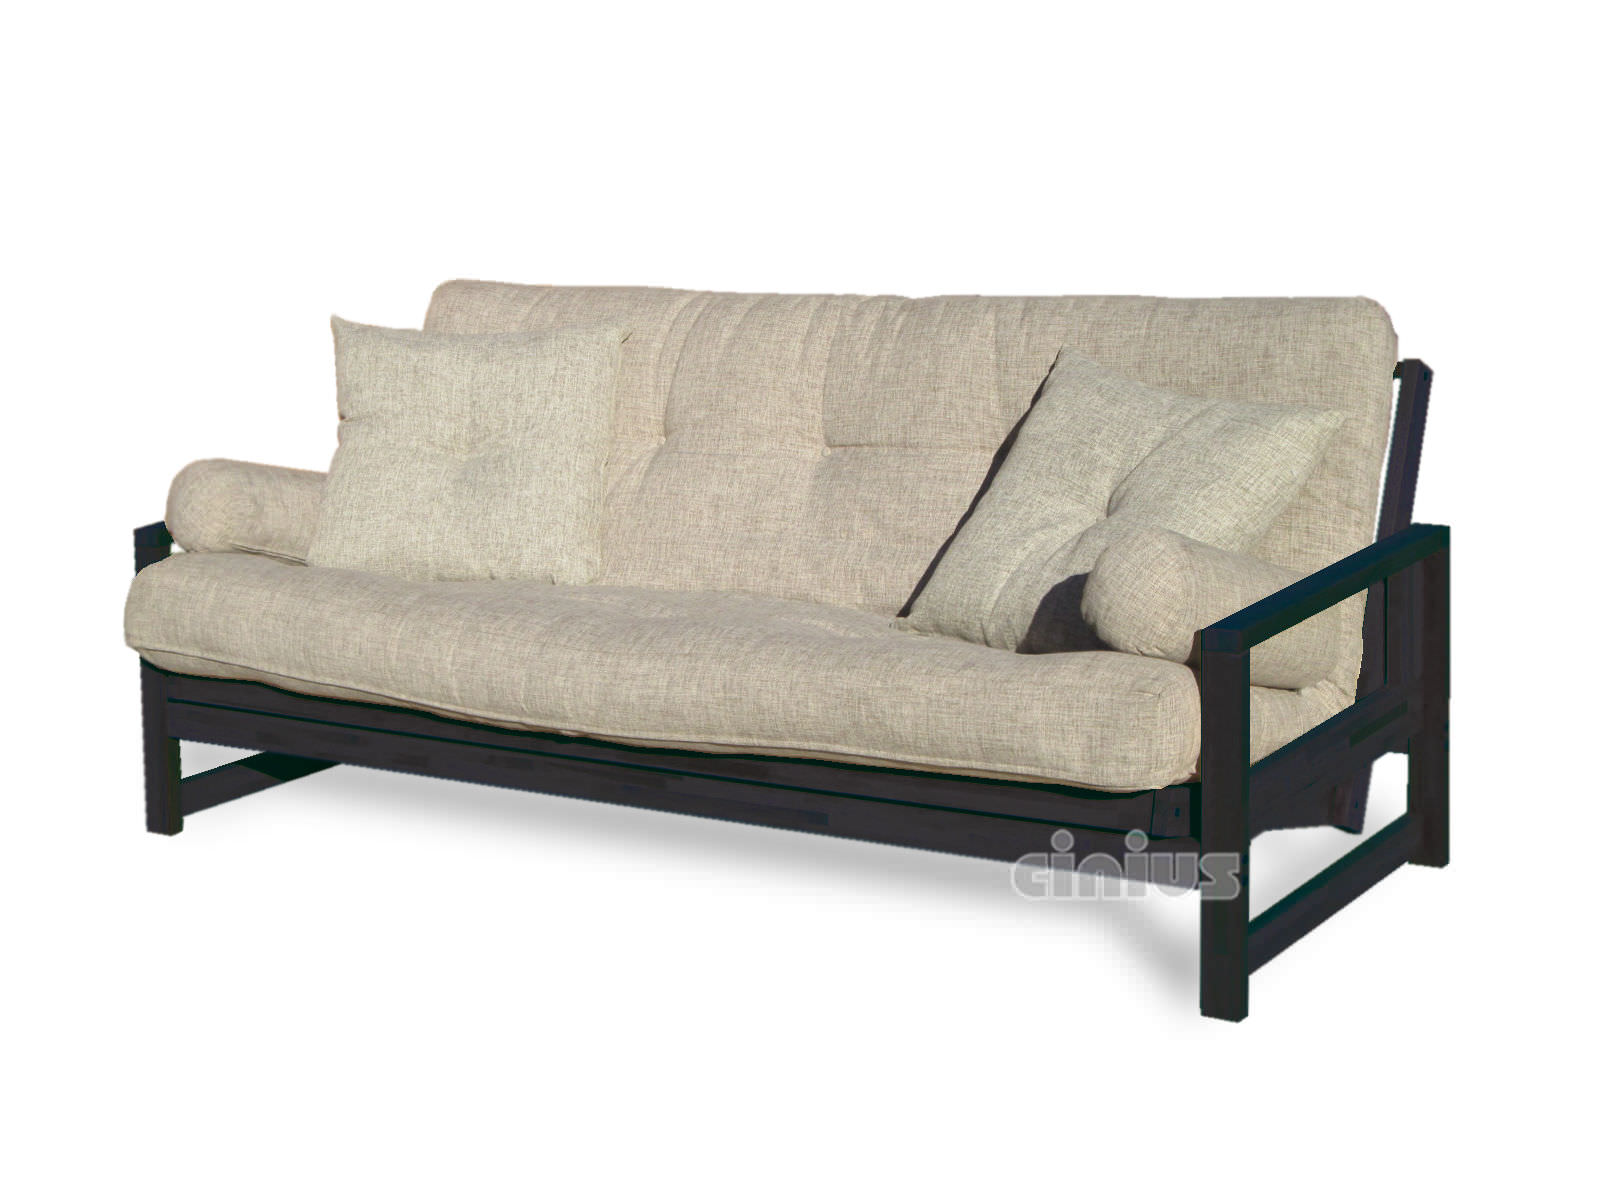 High Quality ... Sofa Bed / Contemporary / Wood / 3 Seater Cinius